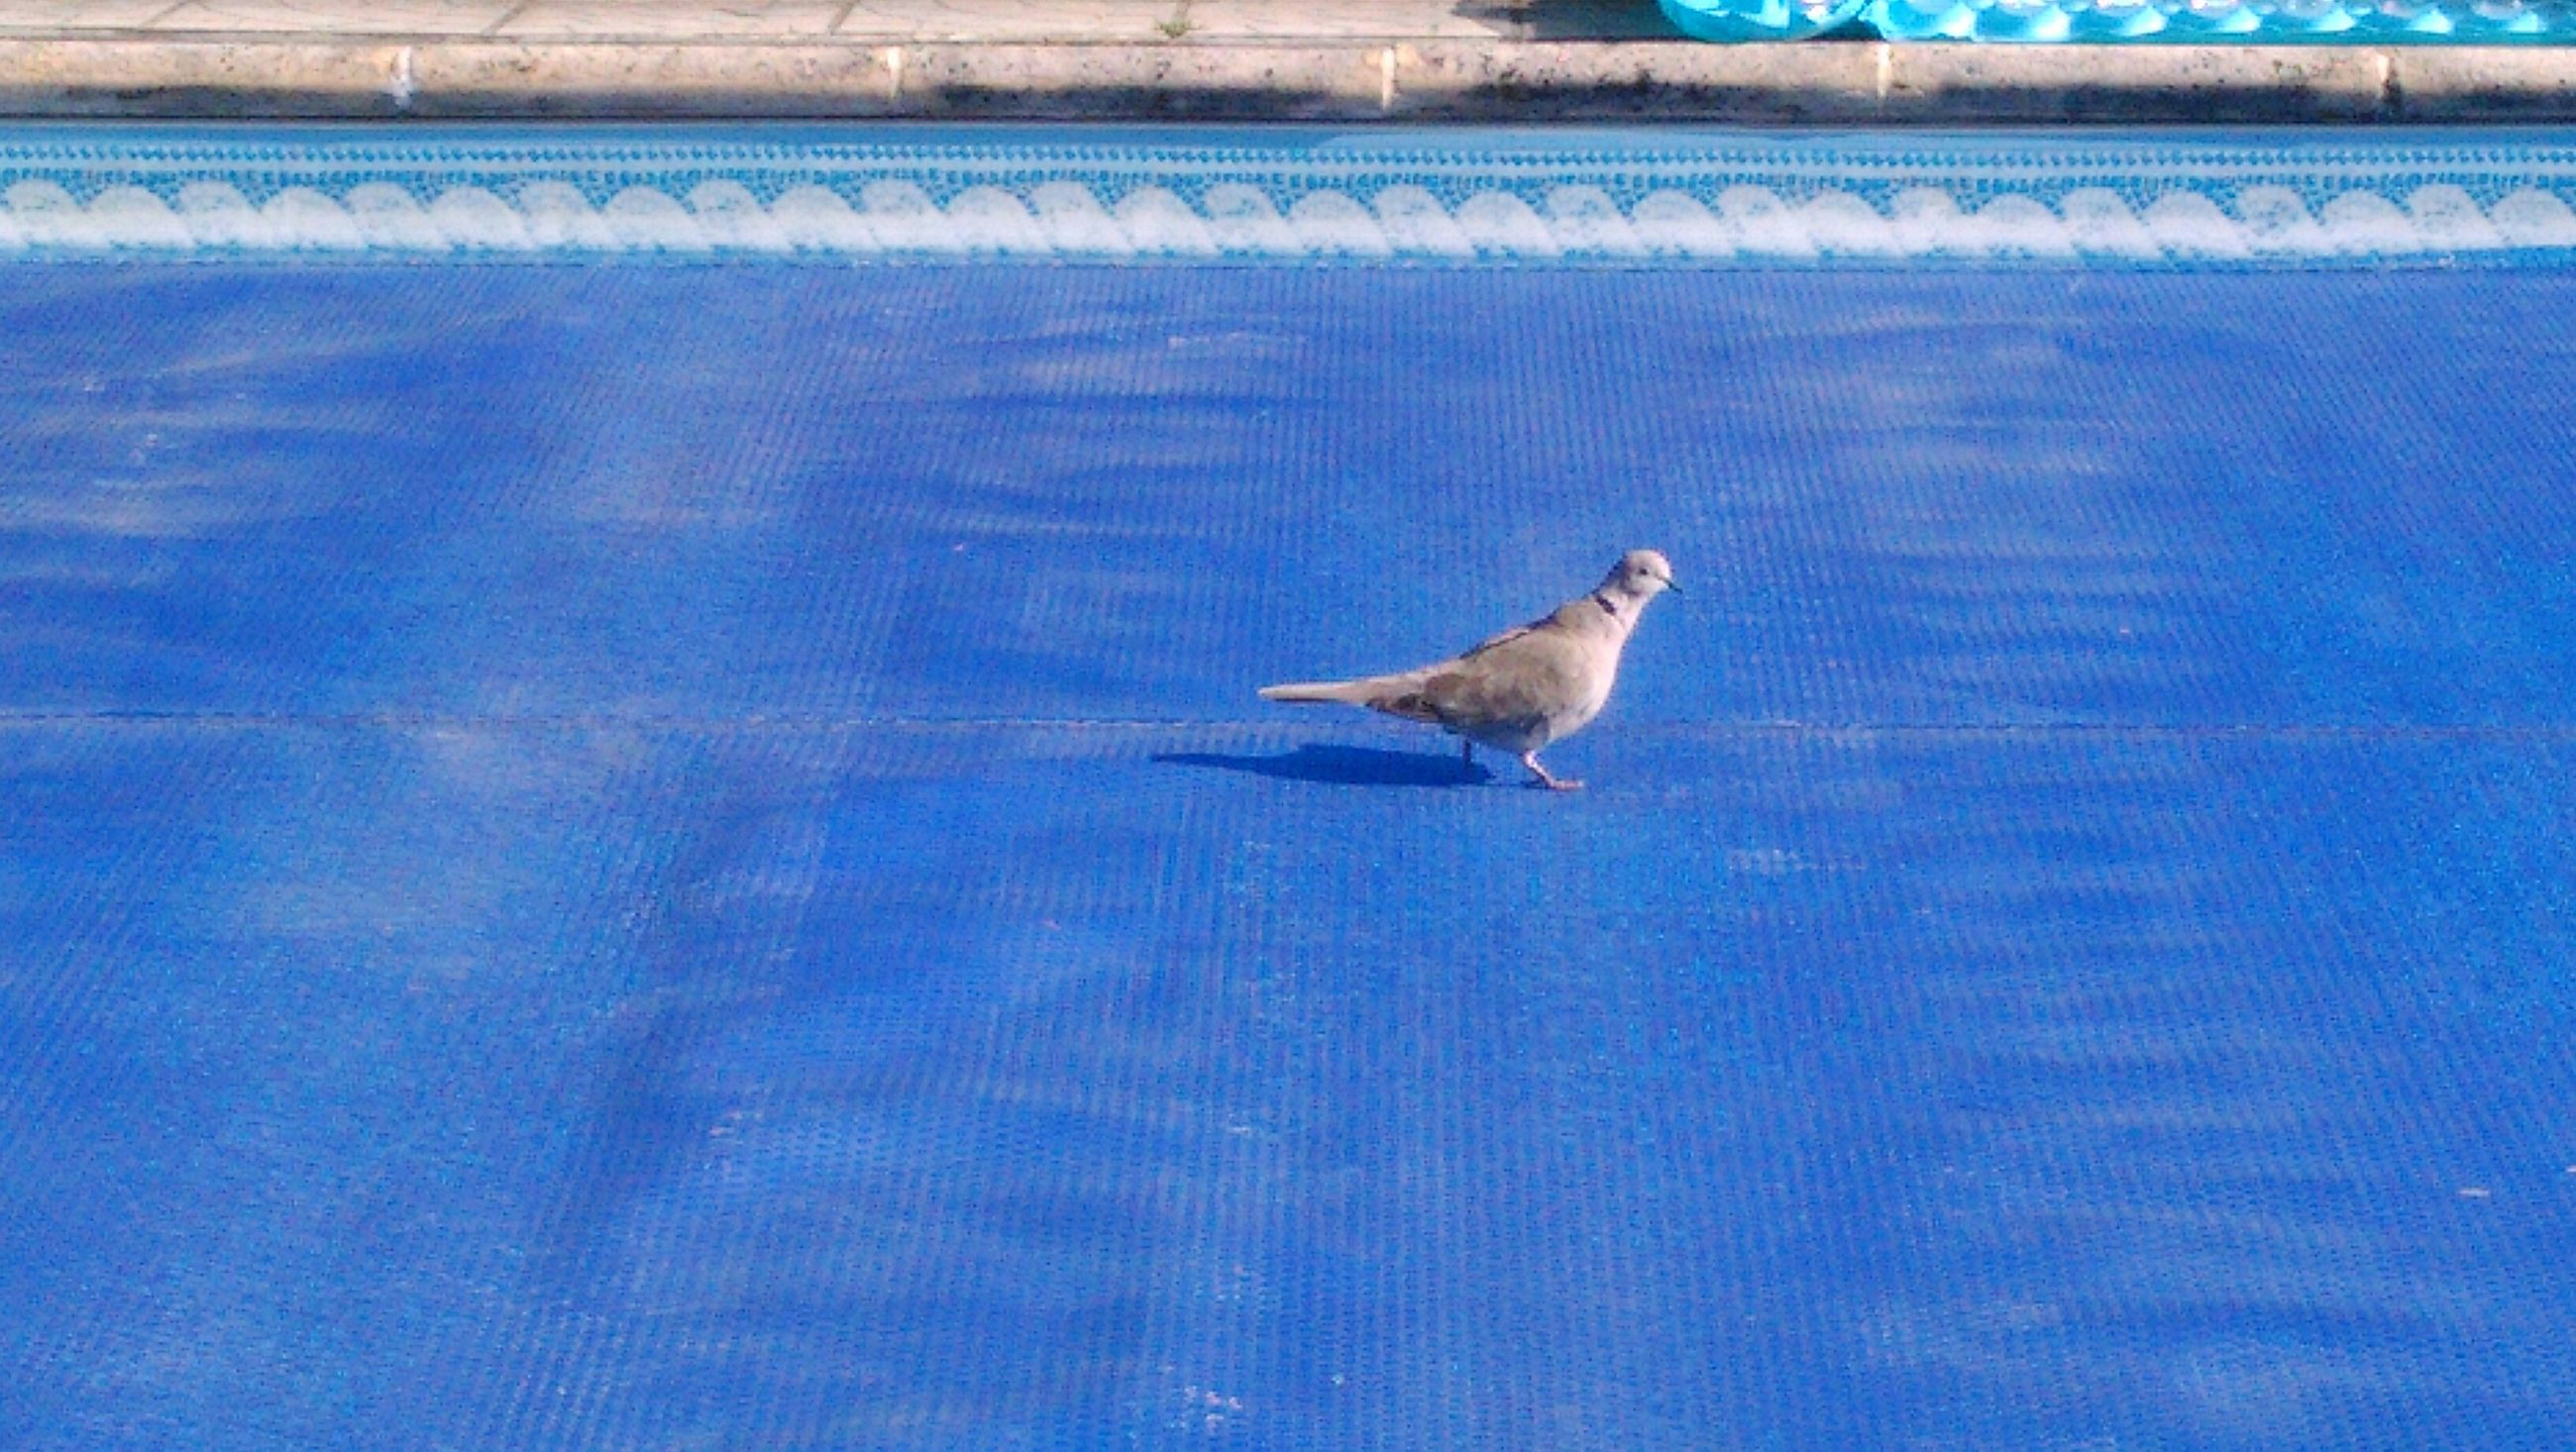 blue, one animal, animal themes, bird, wildlife, animals in the wild, seagull, flying, water, nature, spread wings, day, sea, full length, no people, outdoors, zoology, beauty in nature, high angle view, sunlight